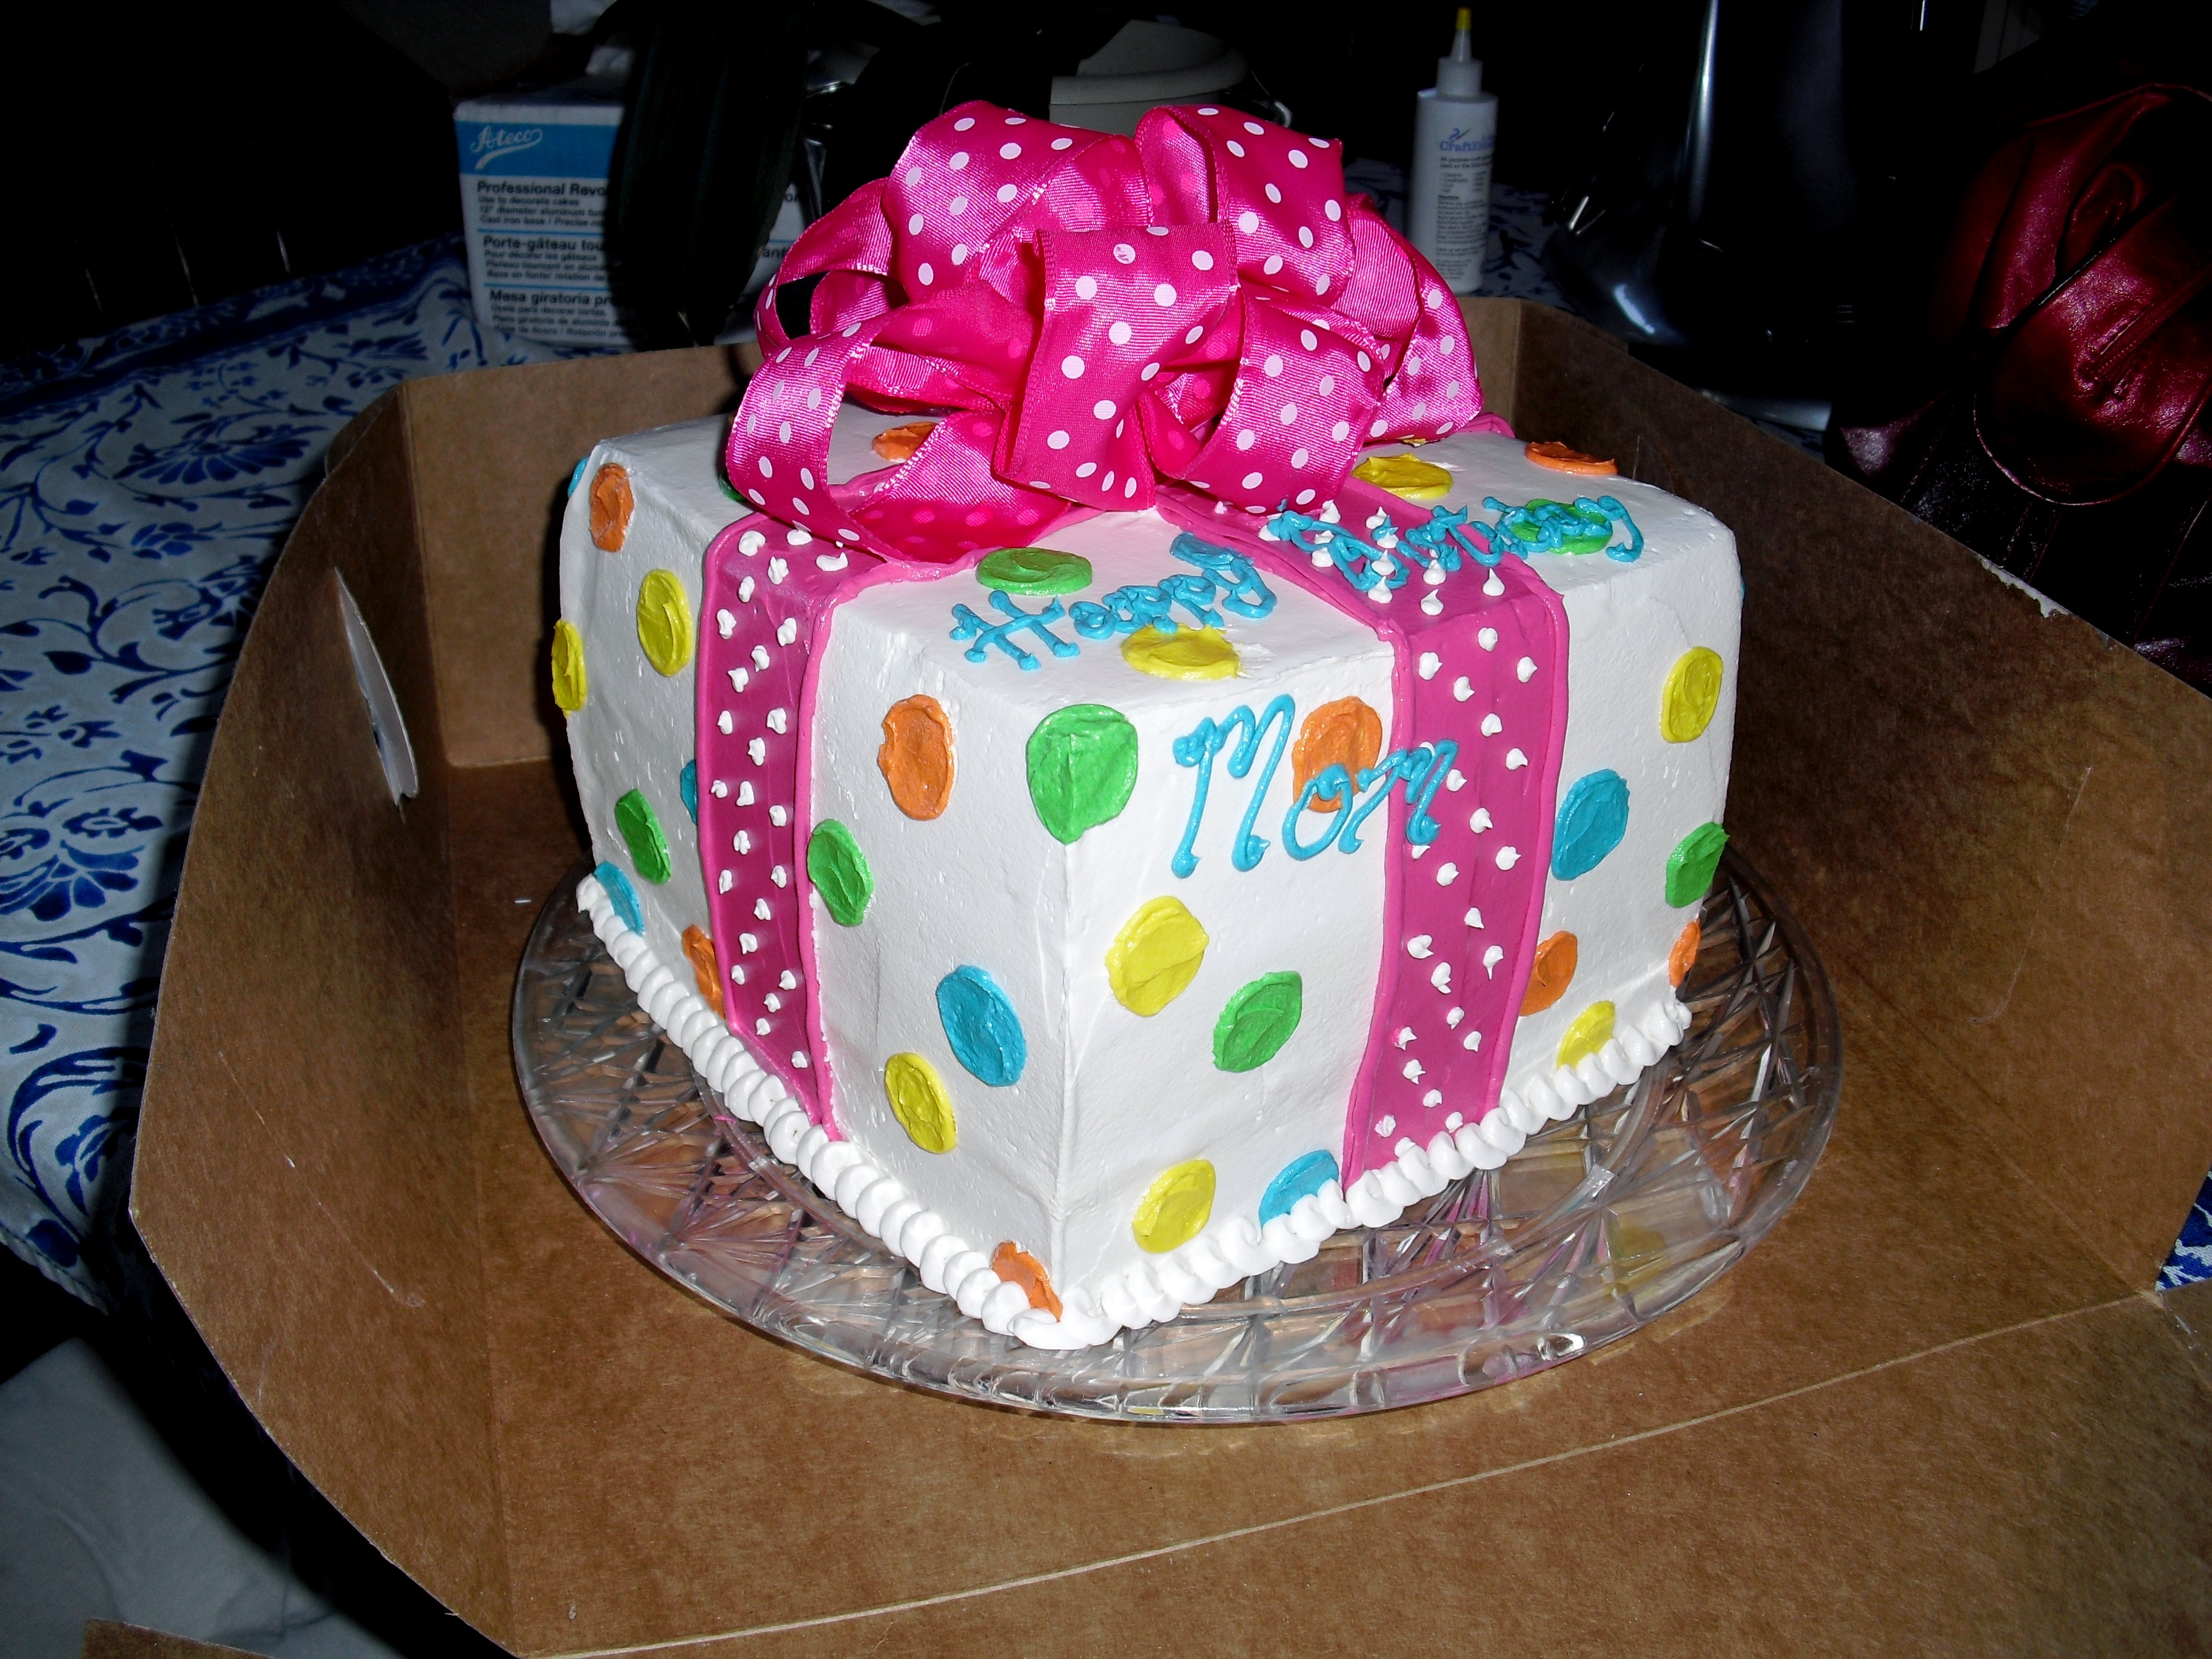 Cake Designs With Polka Dots : Polka Dot Cakes   Decoration Ideas Little Birthday Cakes